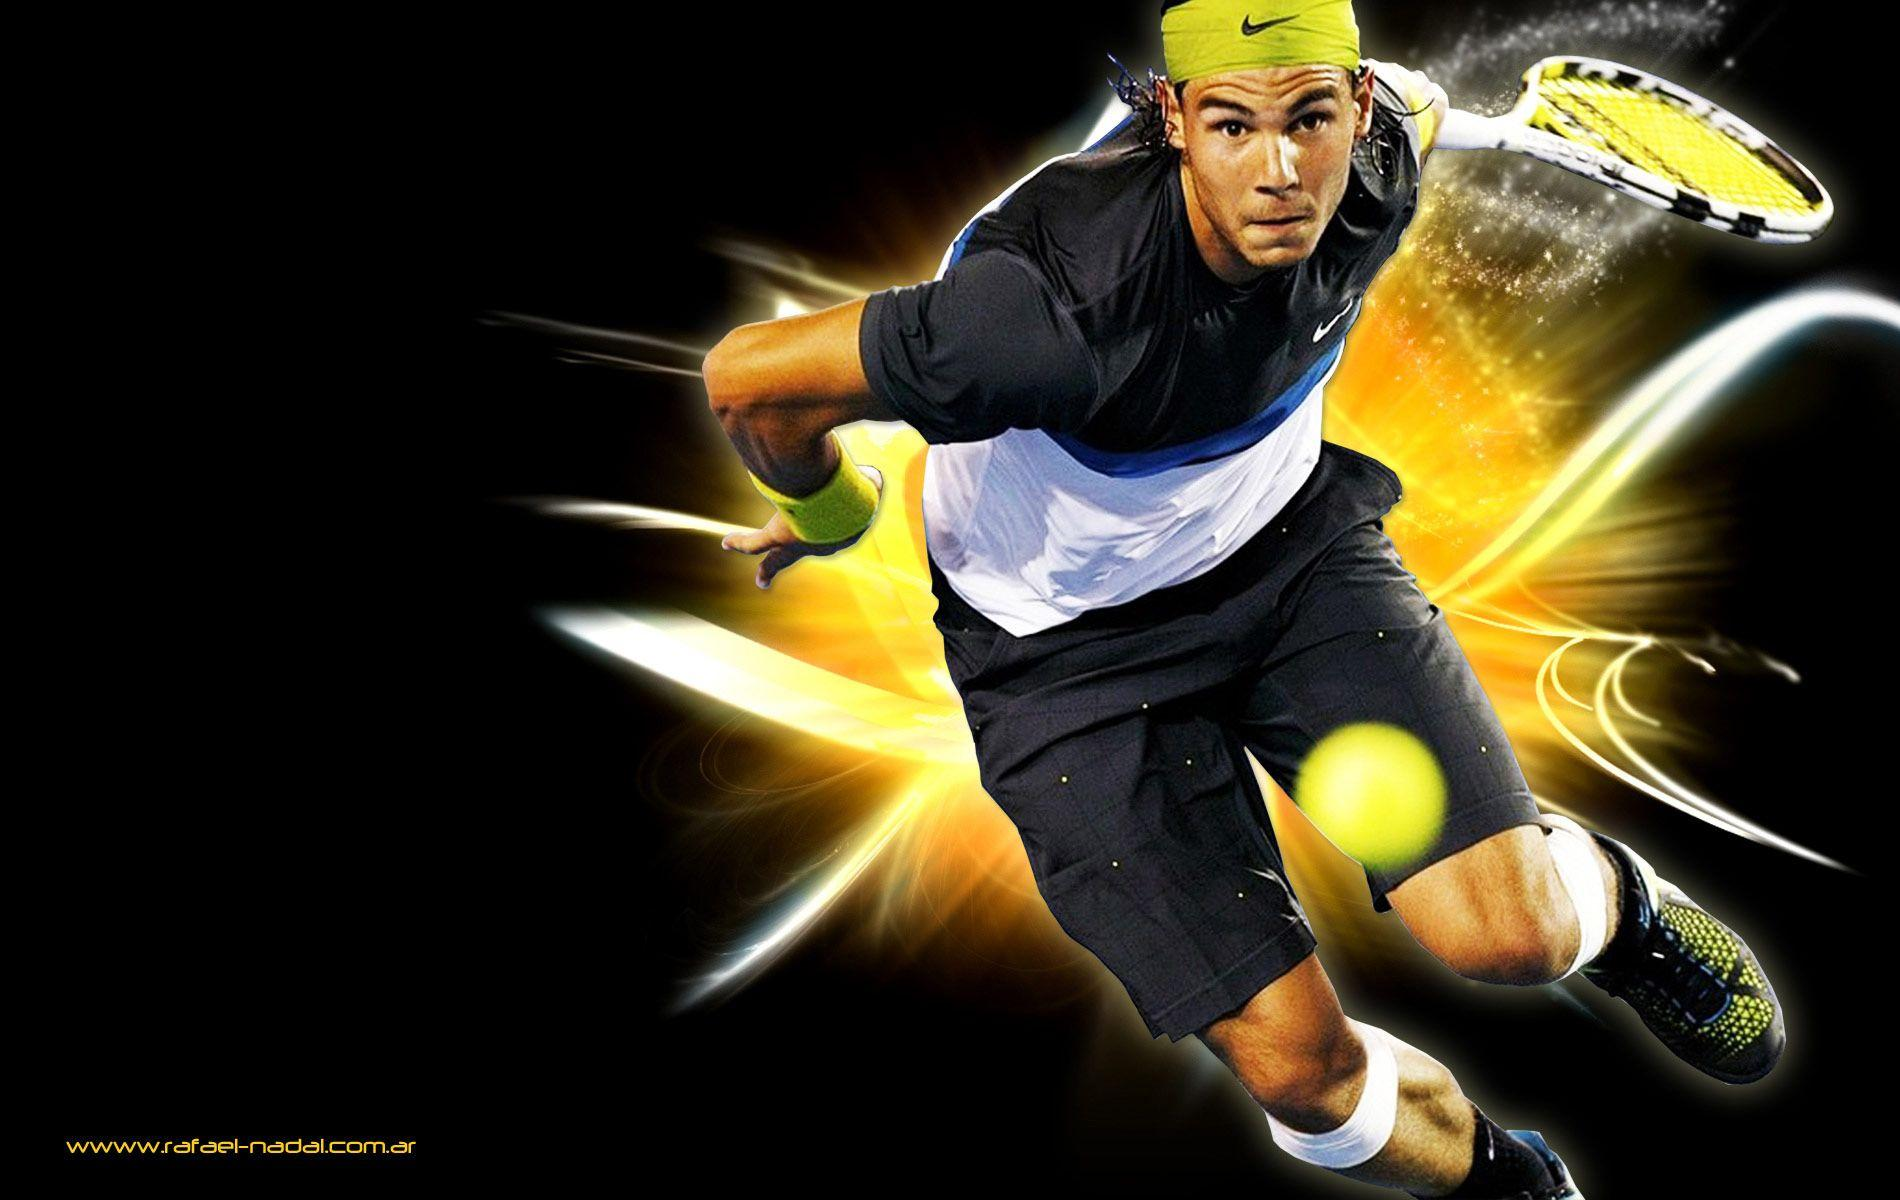 nadal wallpapers - wallpaper cave